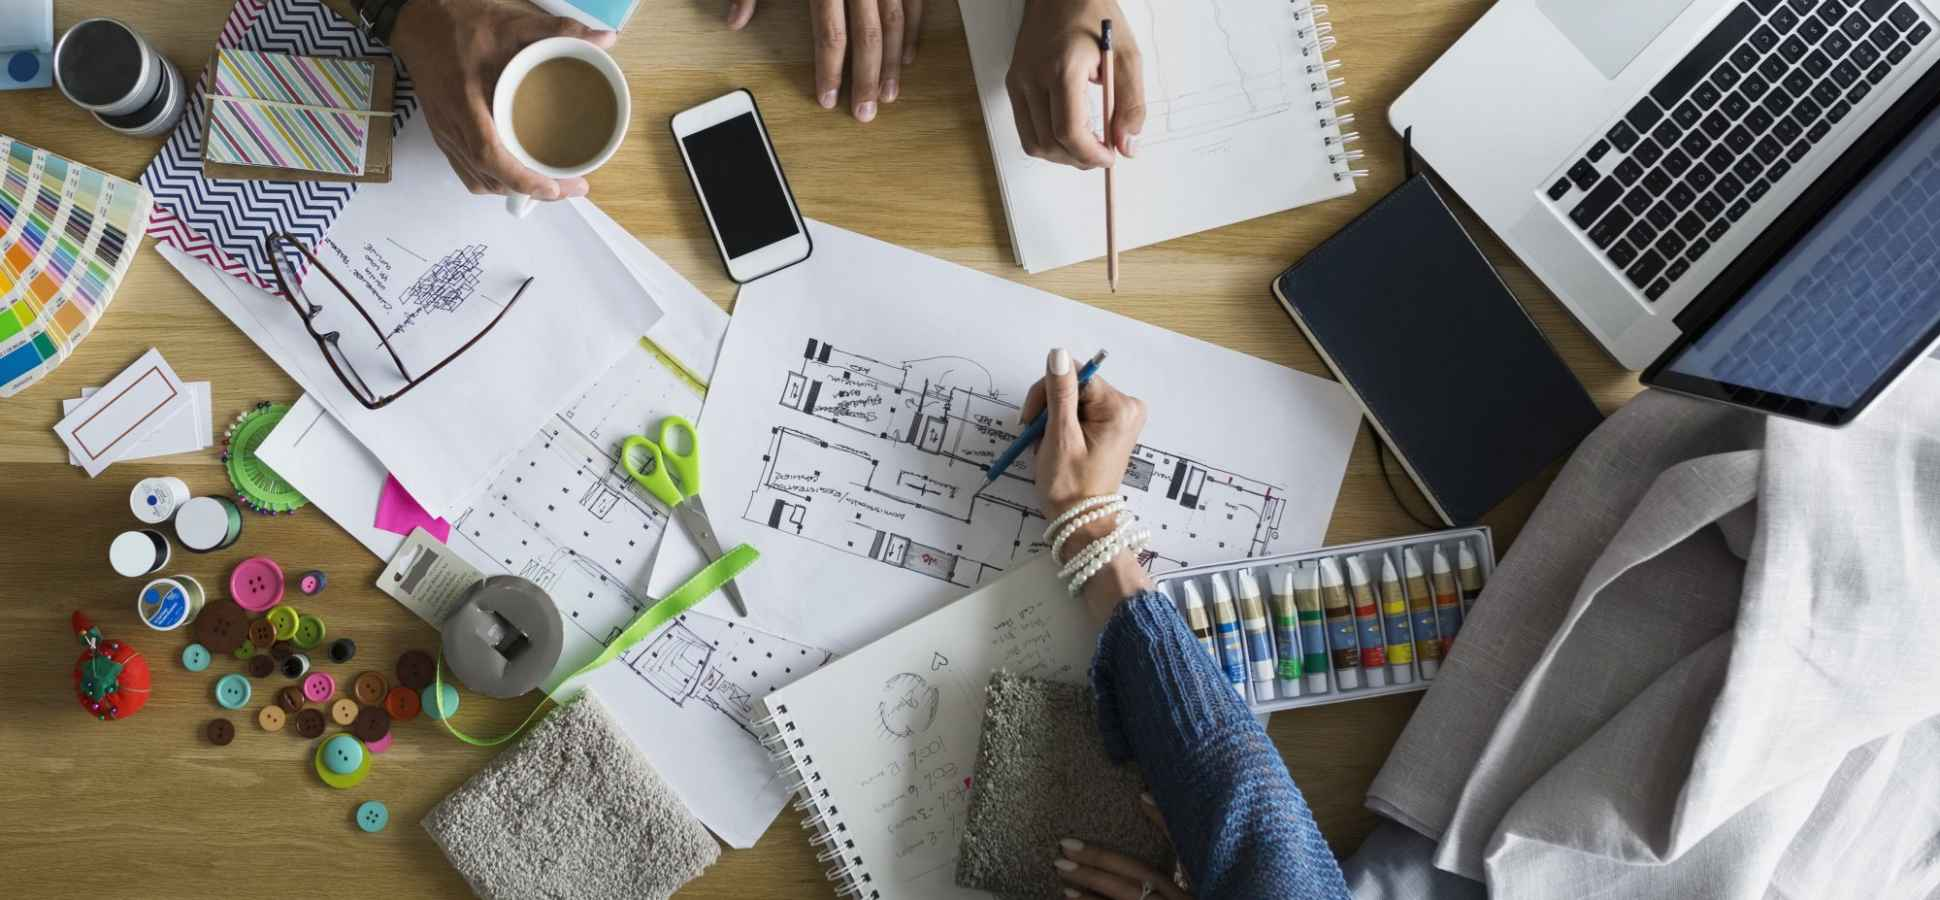 How to Make Your Team Fearlessly Creative | Inc.com